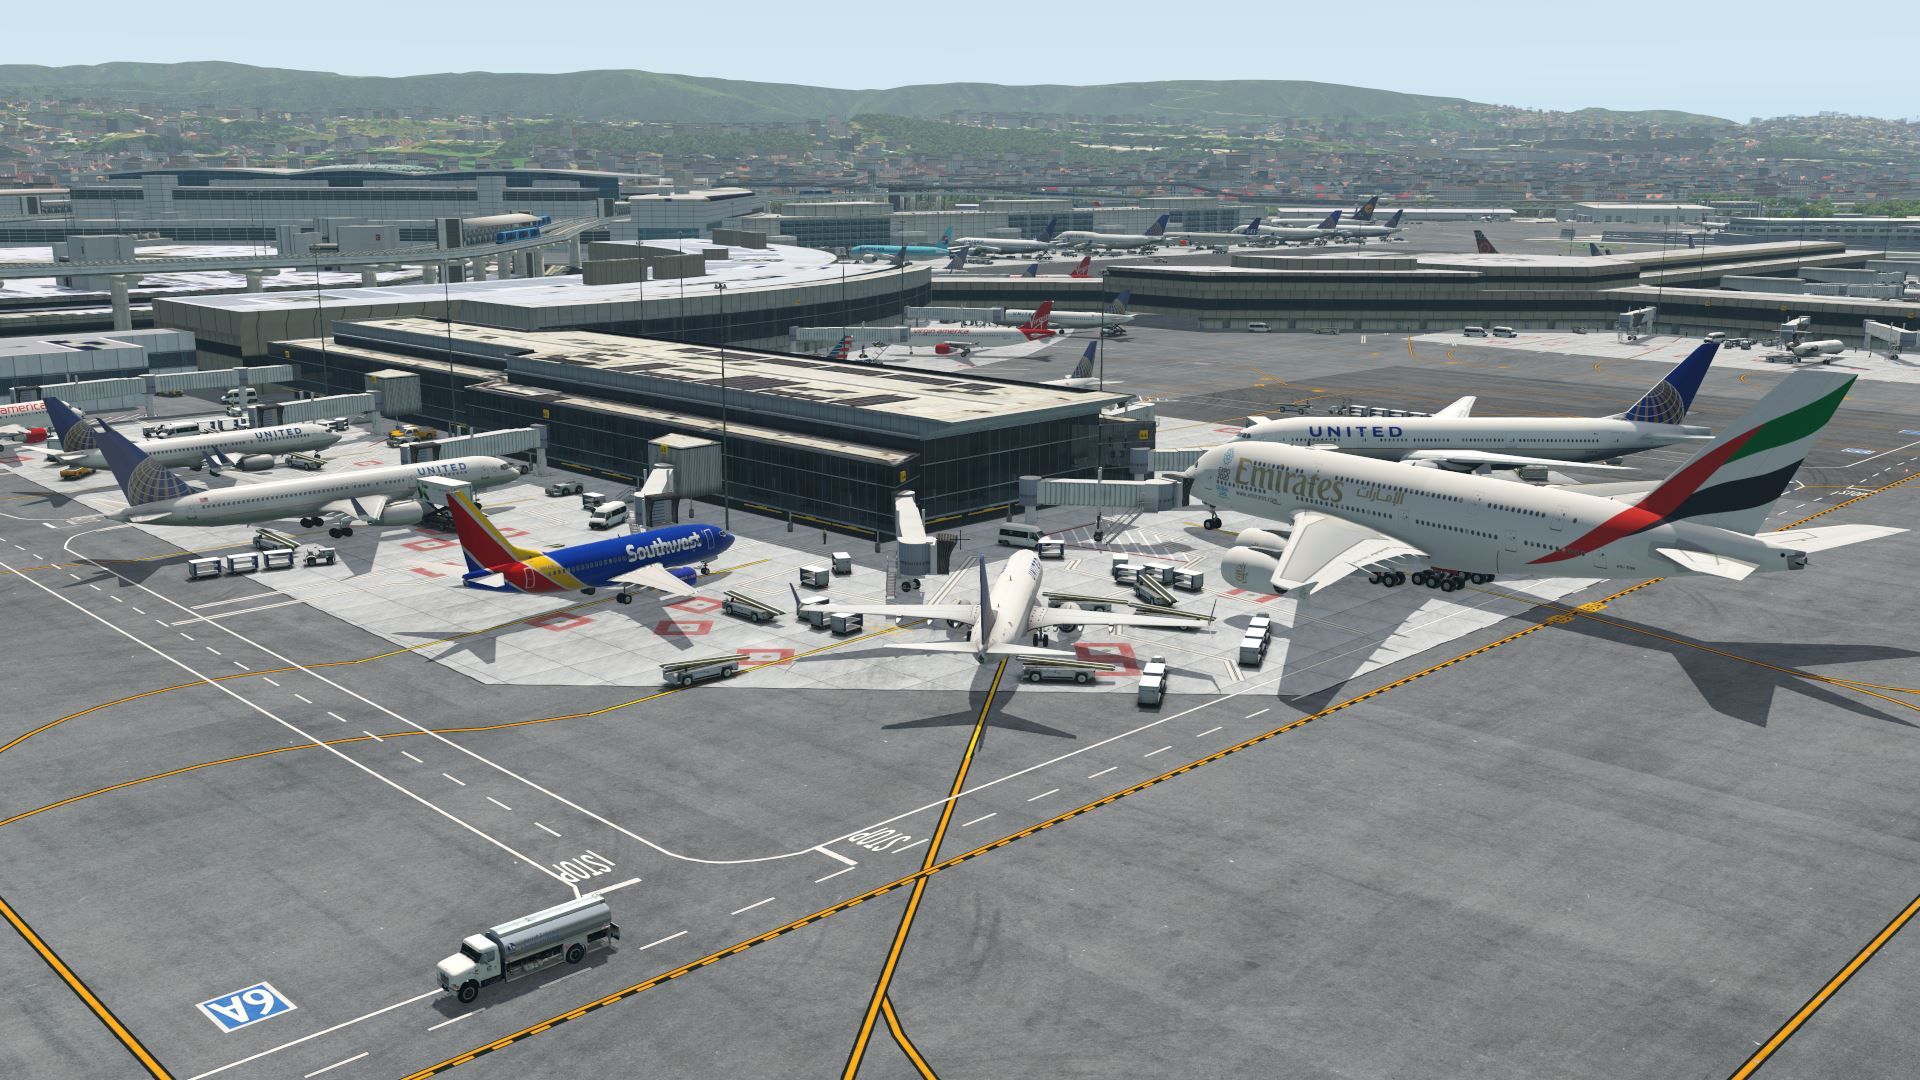 XP11 & World Traffic 3 Pics - Screens & AARs - Mudspike Forums